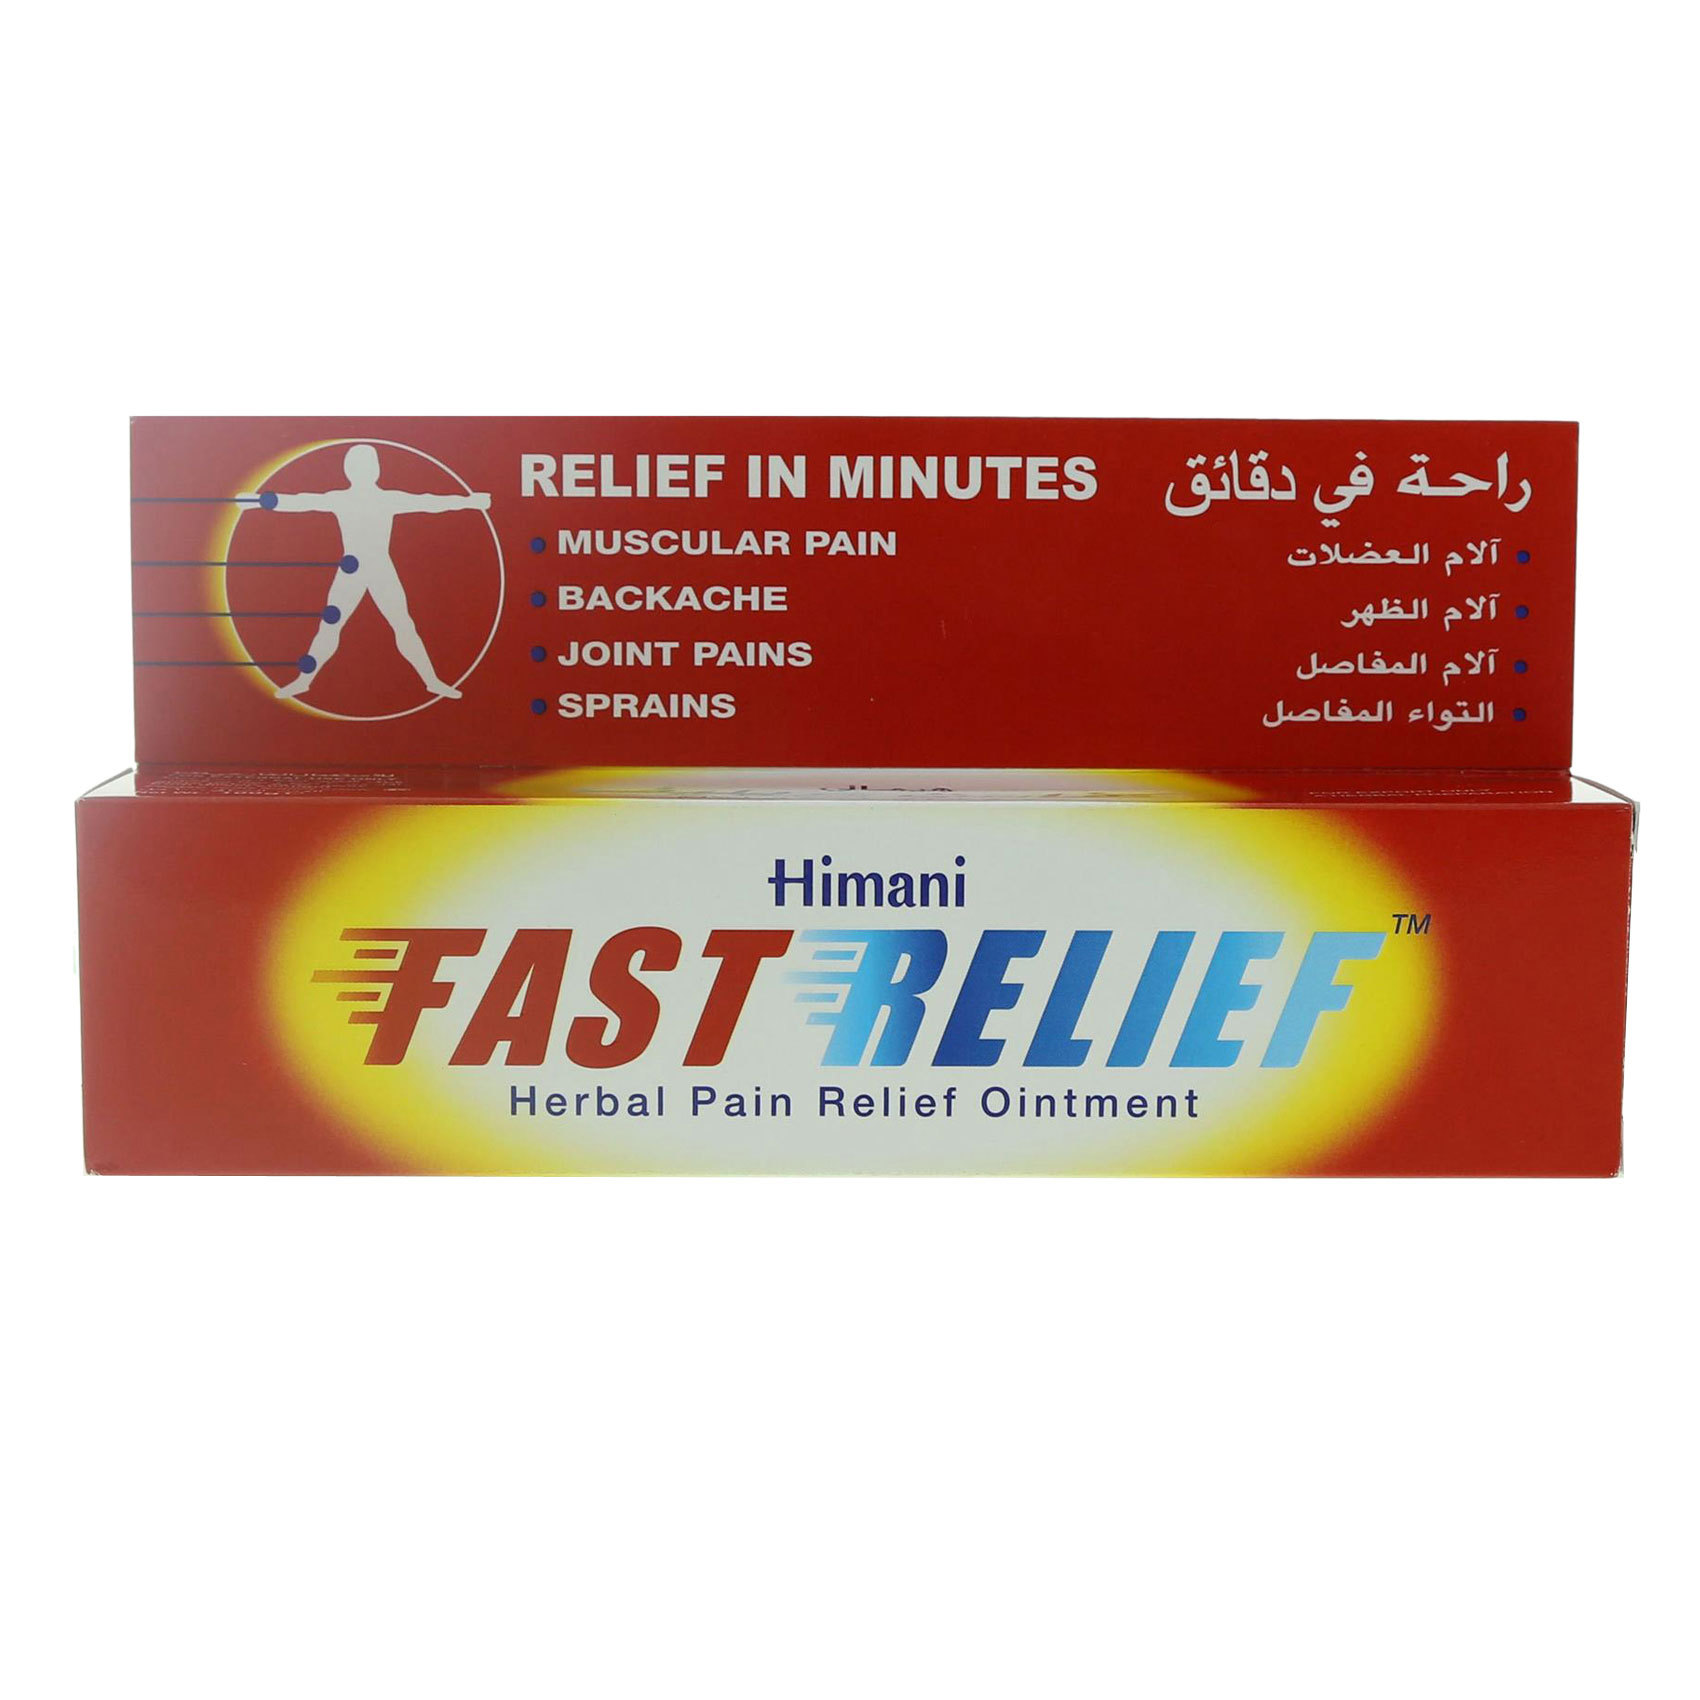 HIMANI FAST RELIEF 100G